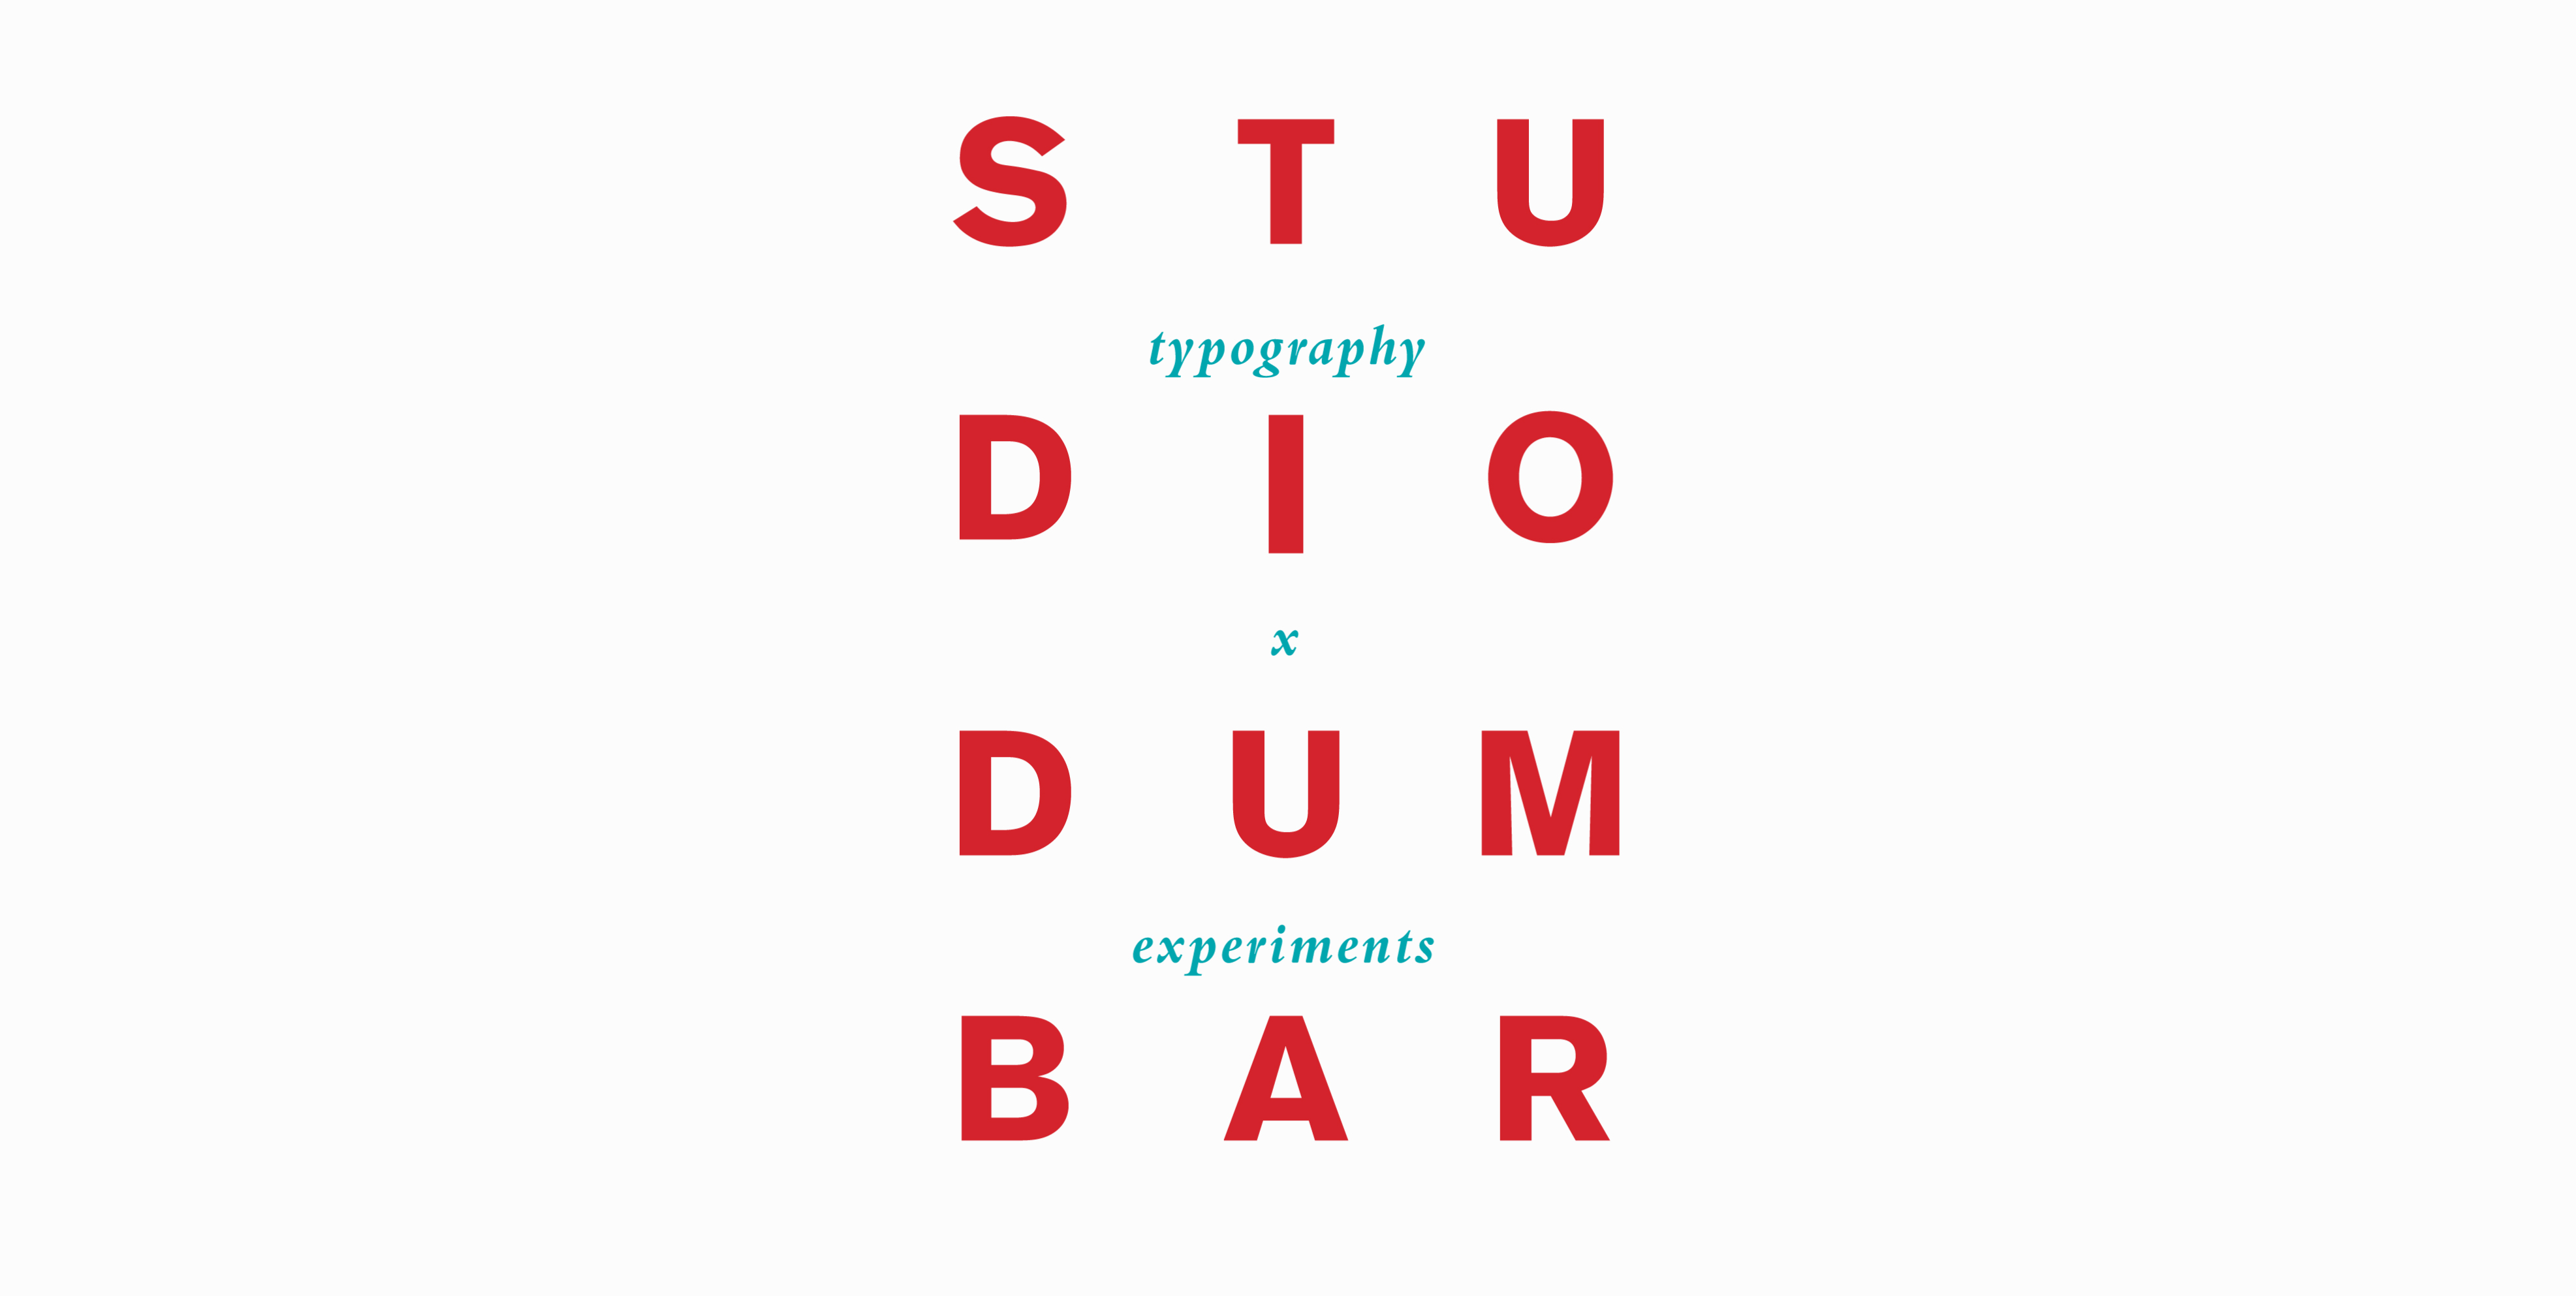 Studio Dumbar: typography x experiments